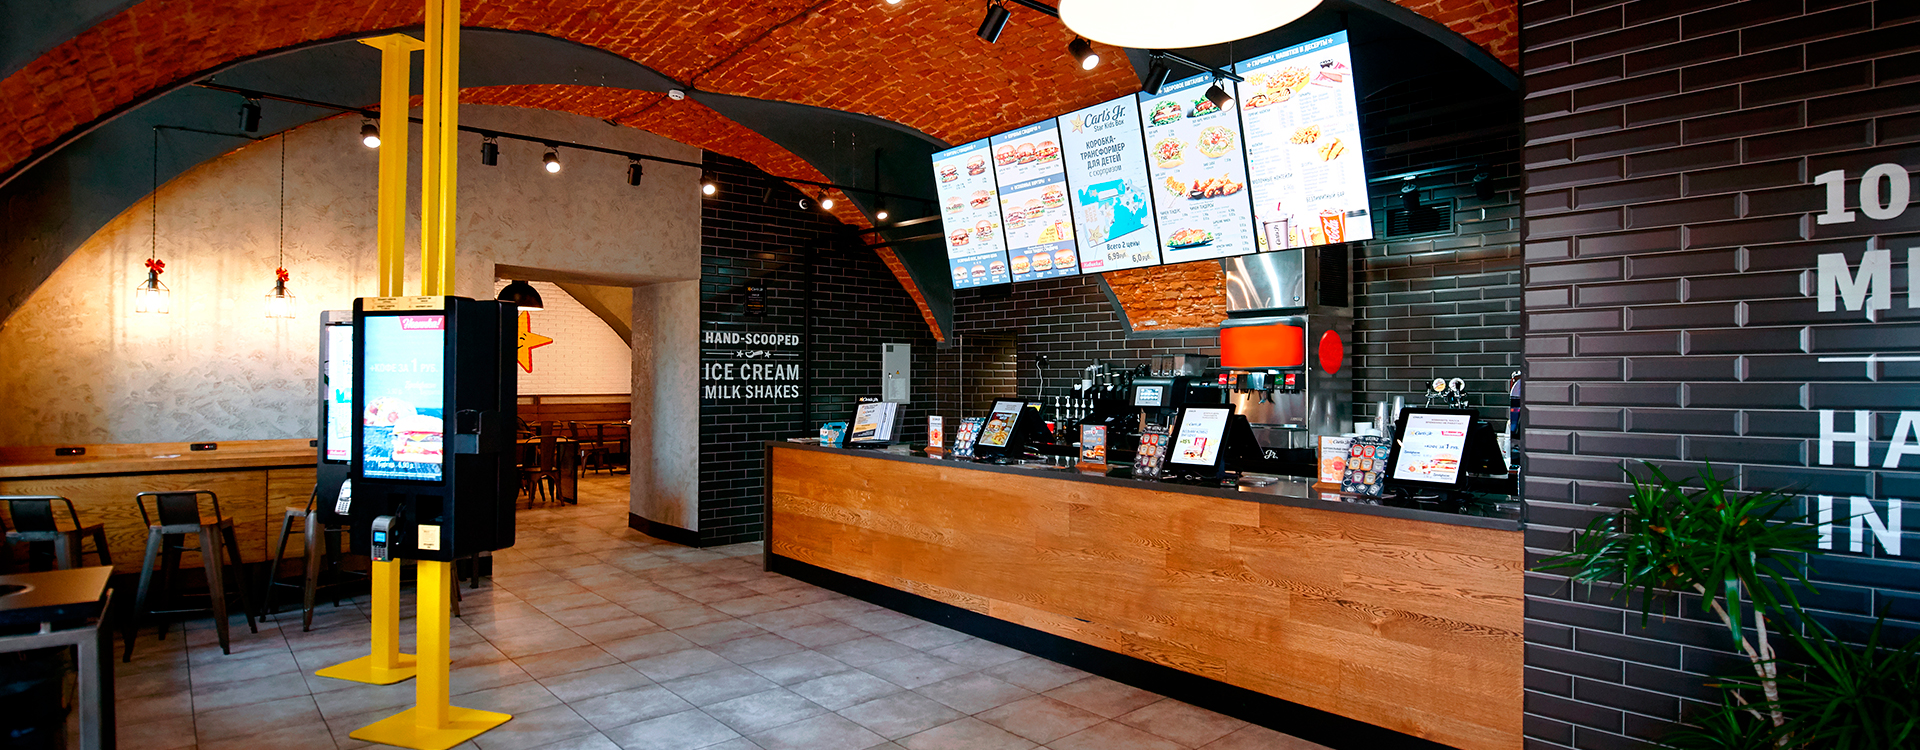 digital signage display in fast food